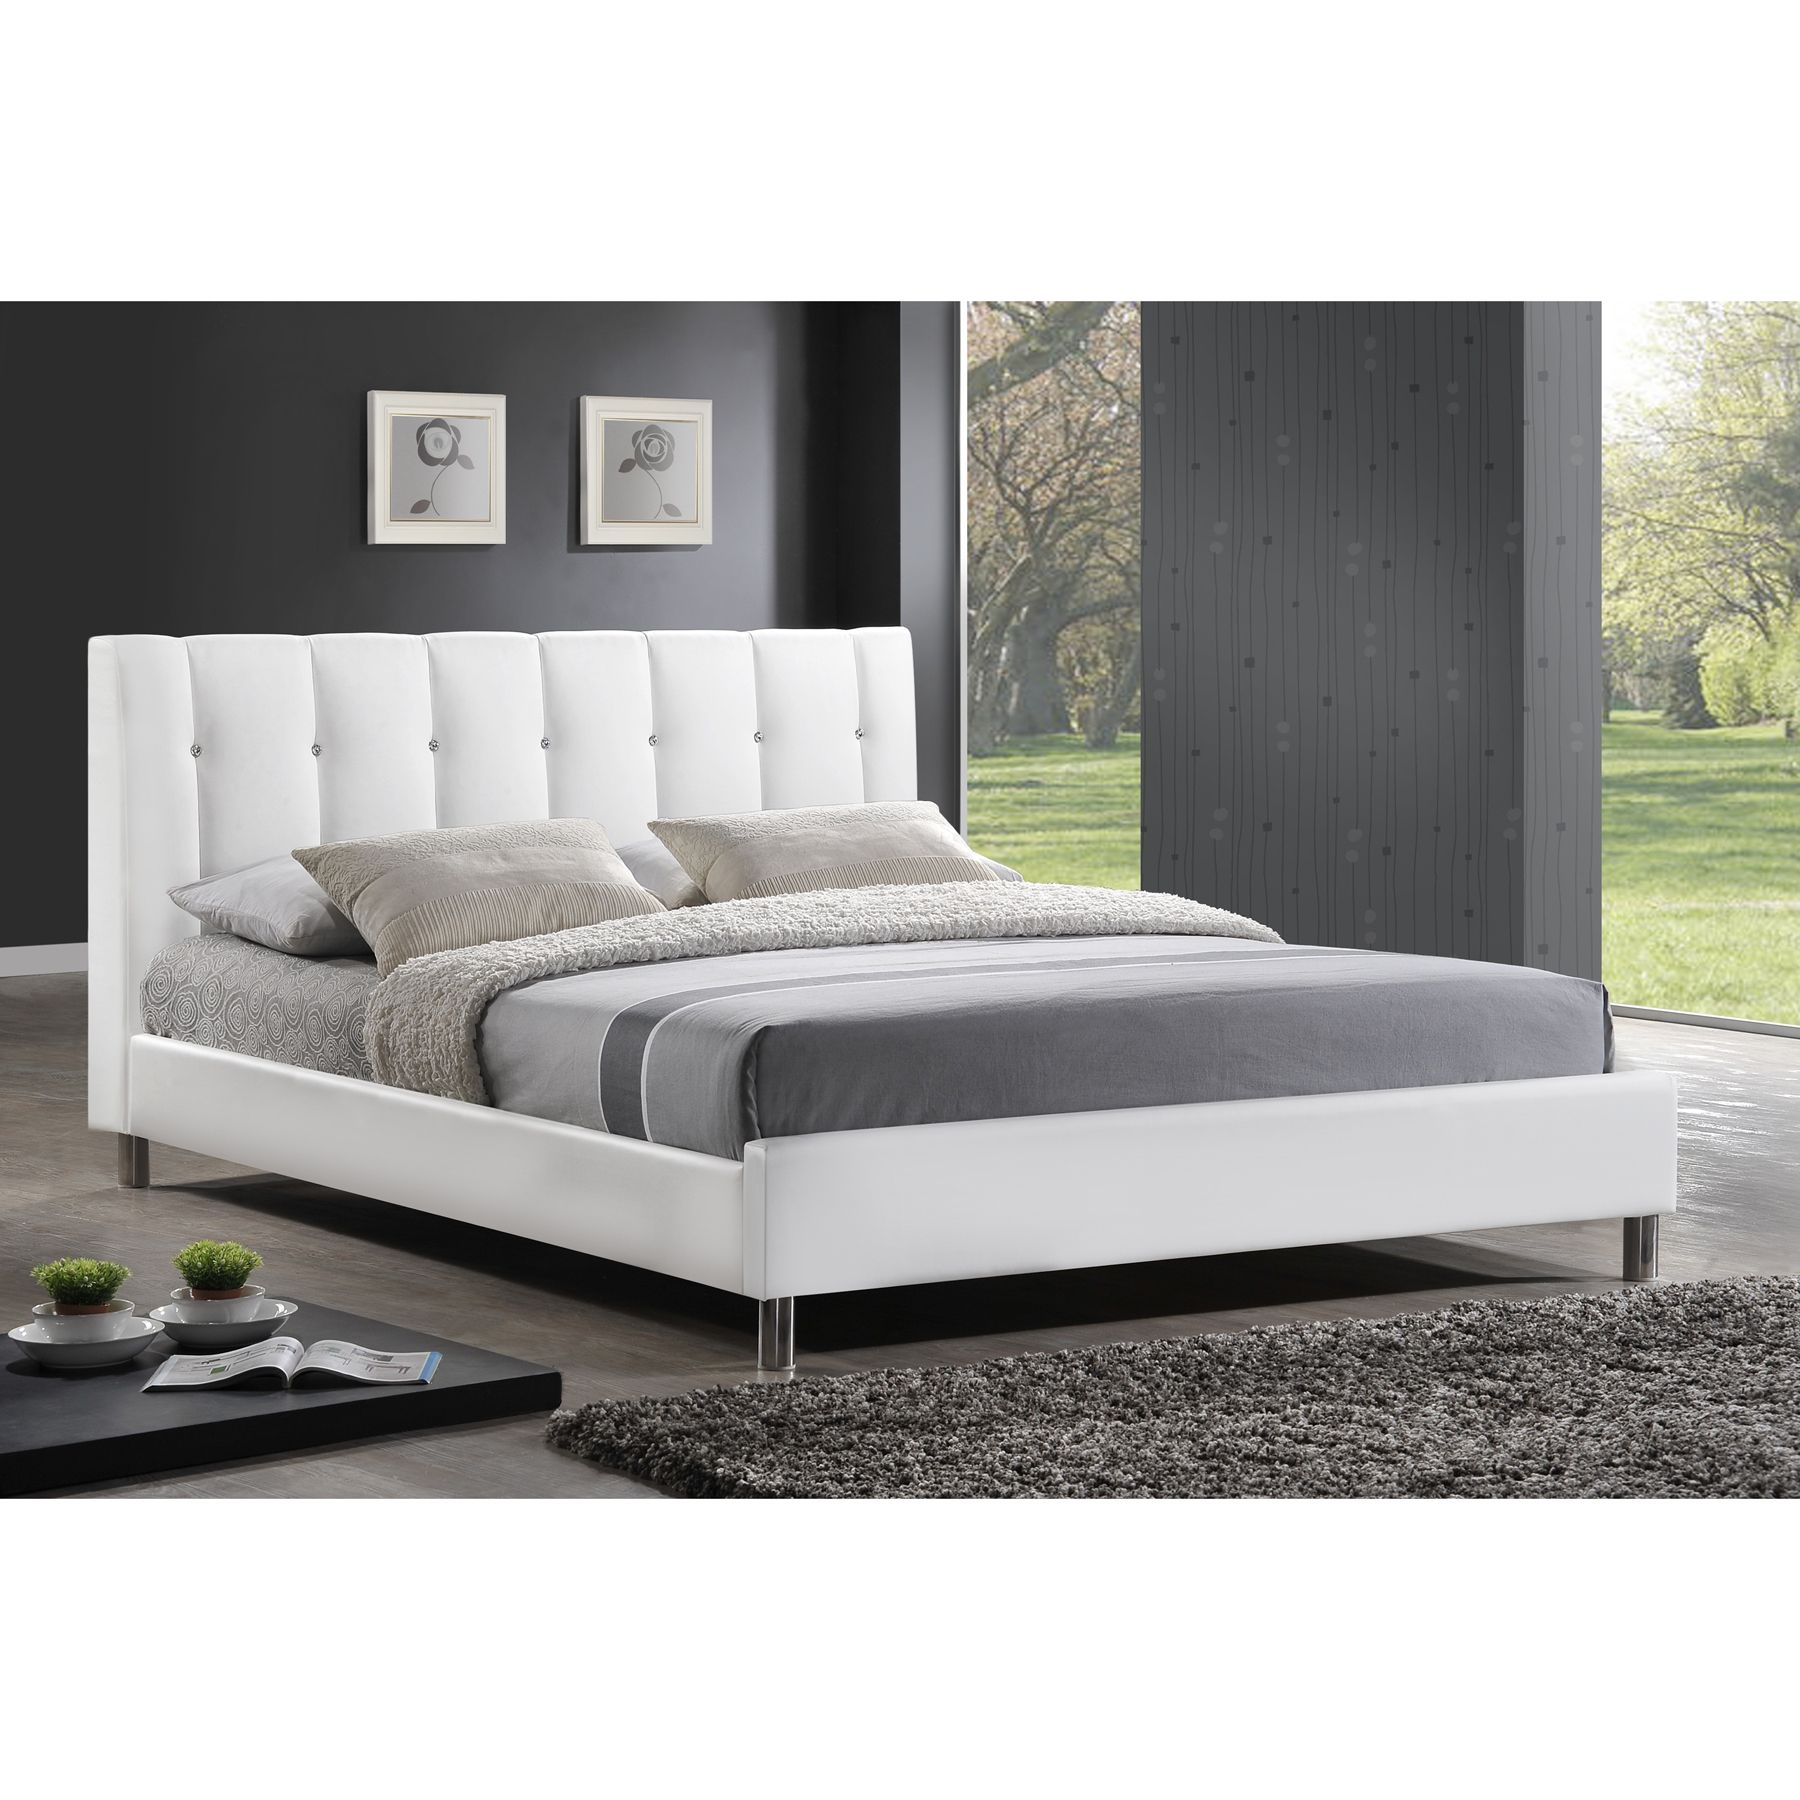 Baxton Studio Vino White Modern Bed With Upholstered Headboard